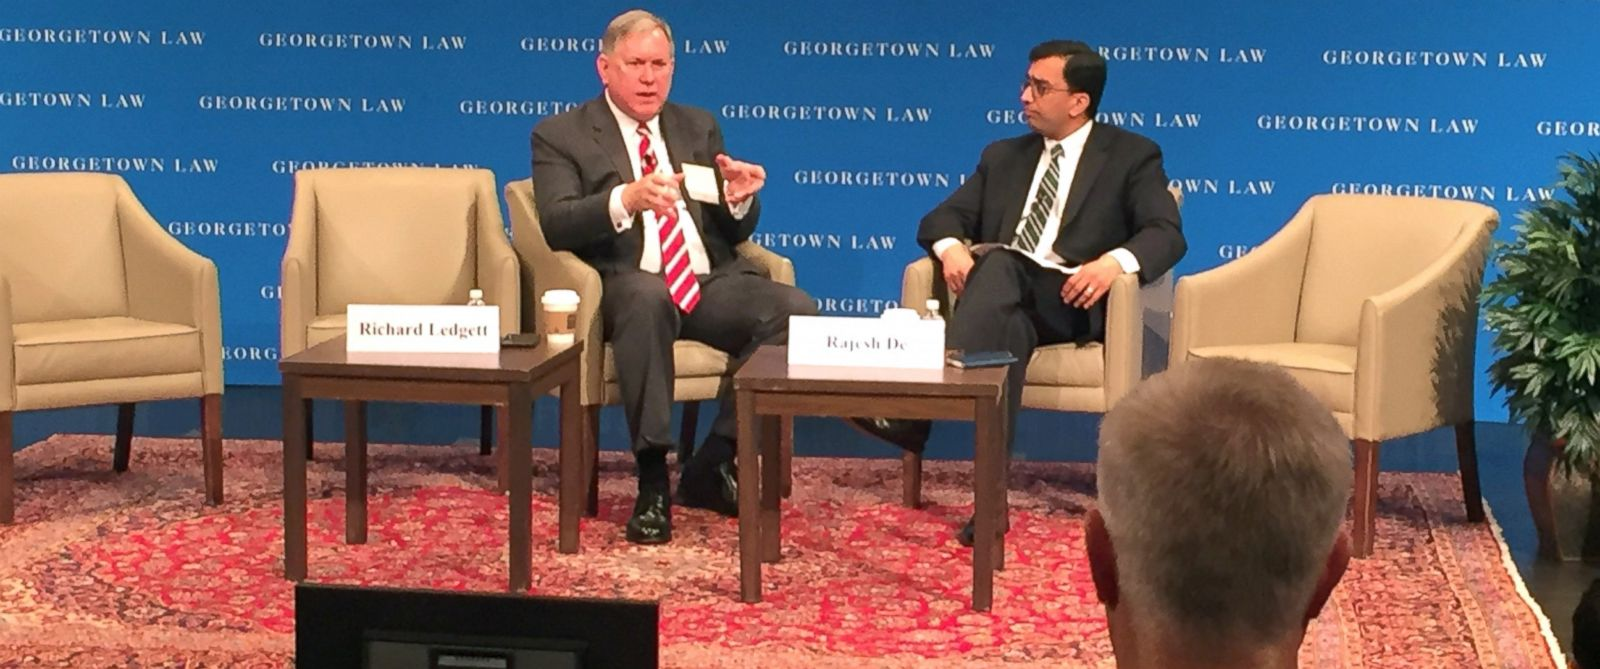 PHOTO: Former NSA Deputy Director Richard Ledgett speaks with former NSA General Counsel Rajesh De at Georgetown Law Schools Annual Cybersecurity Law Institute in Washington, May 18, 2017.